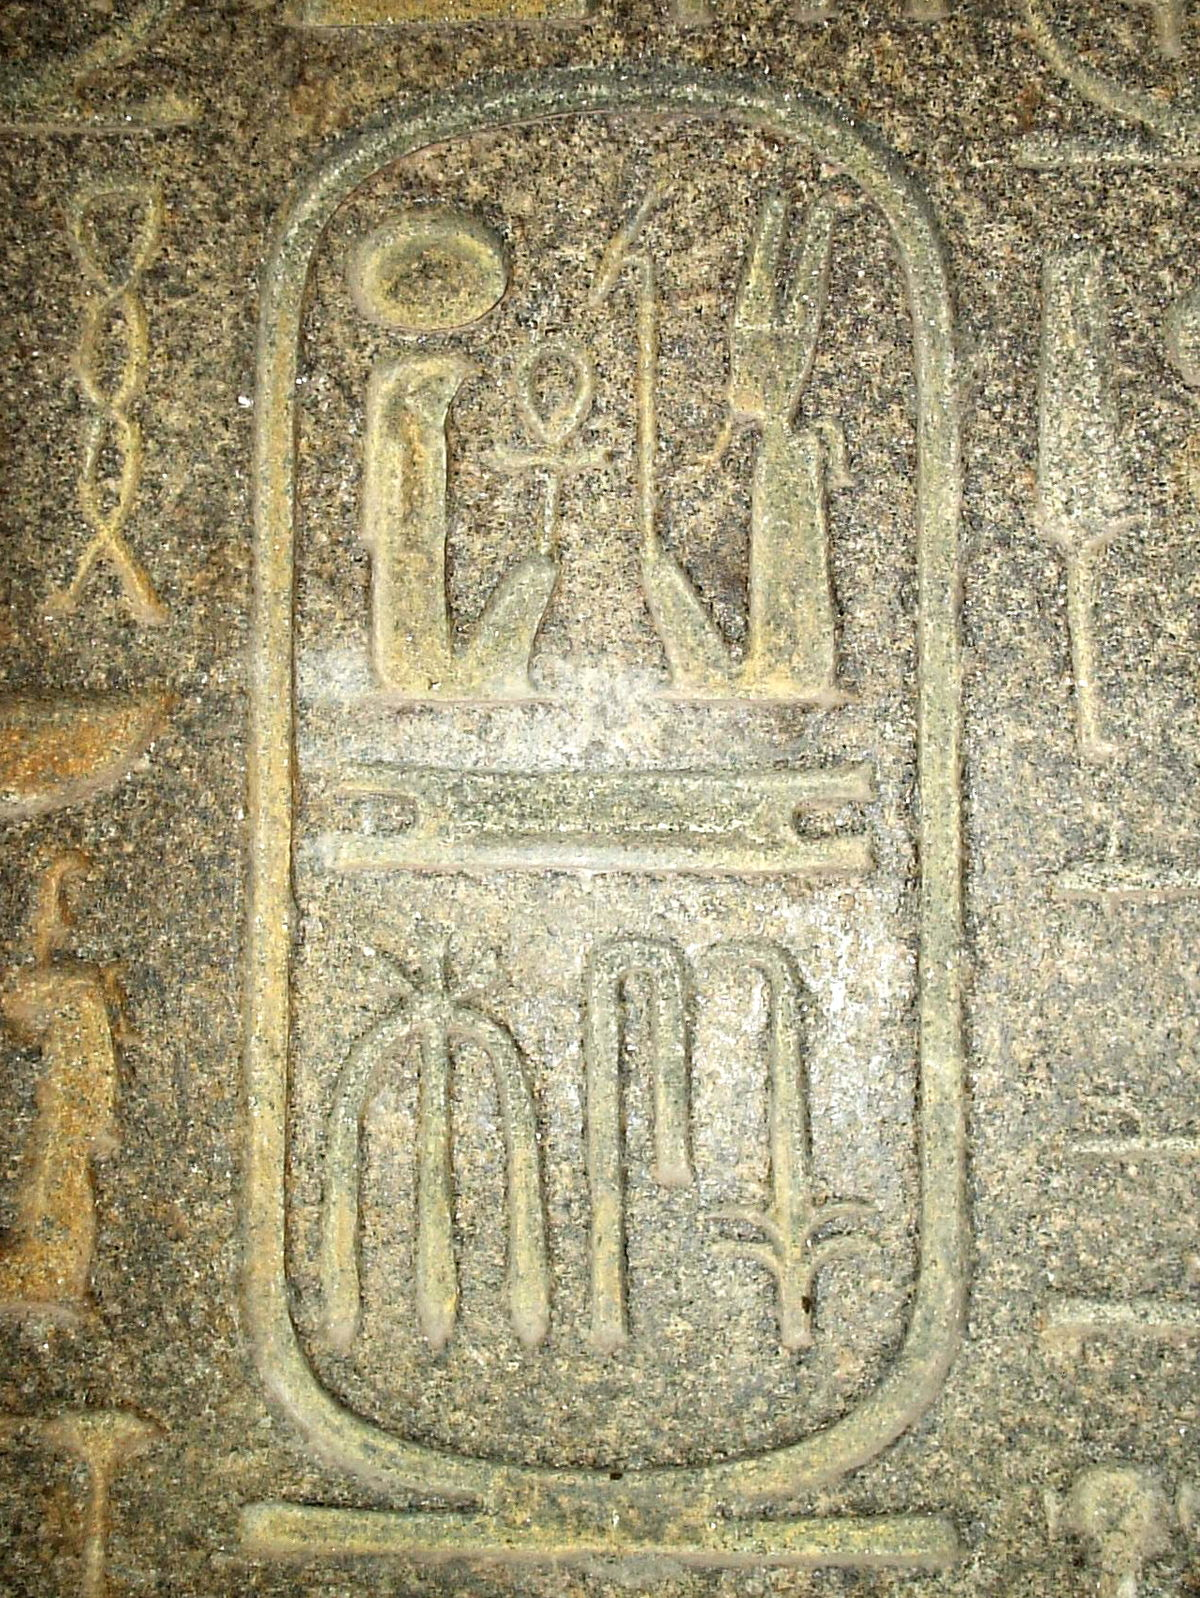 cartouche - Wiktionary